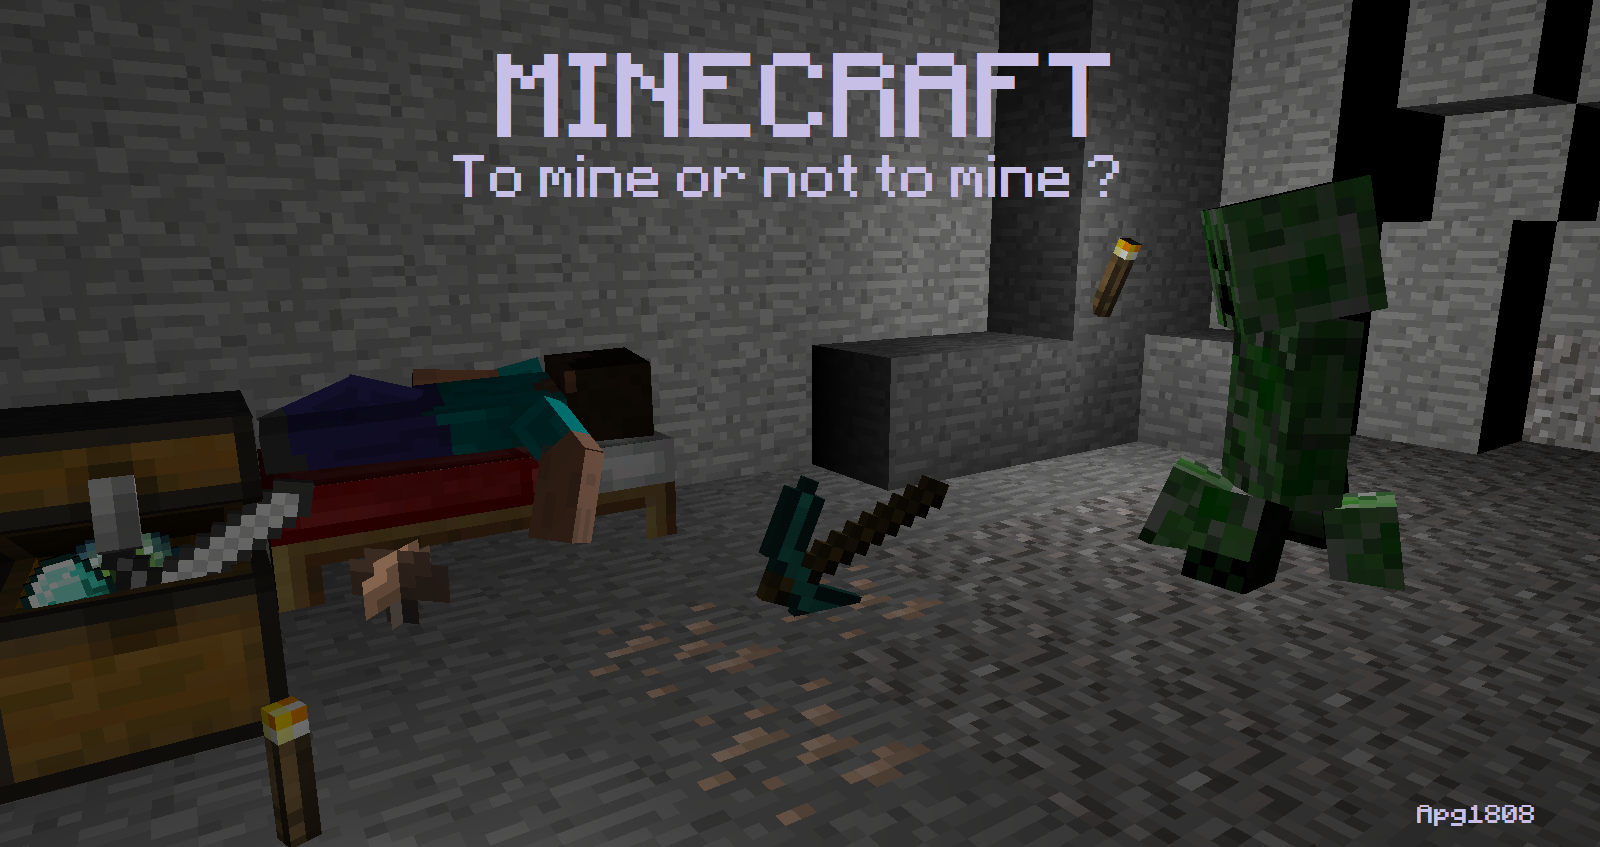 fr-minecraft_wallpaper_QRSV.png